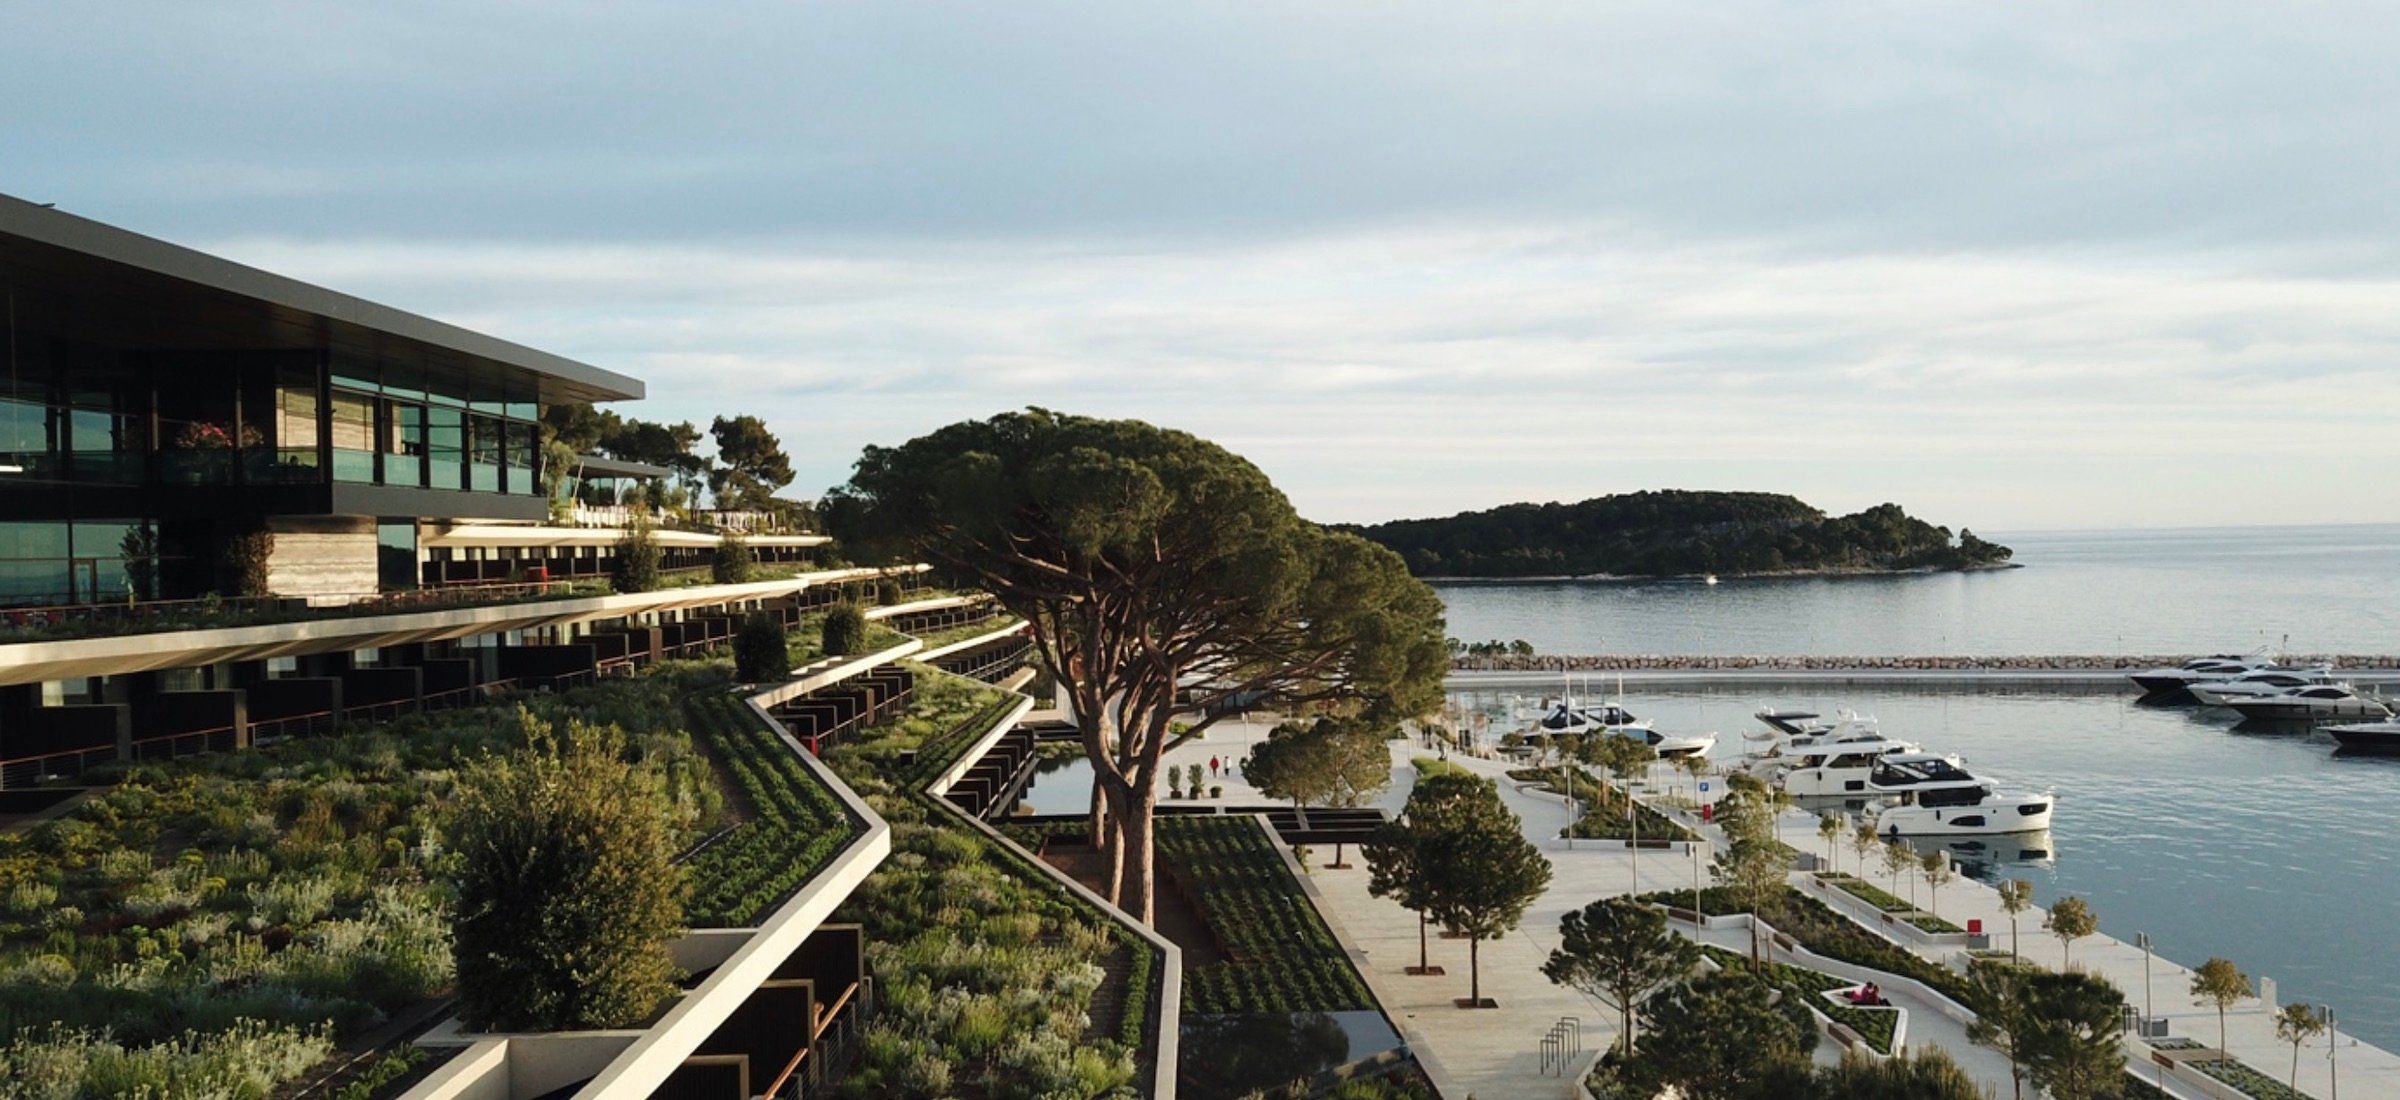 Adriatic dreams: the contemporary Croatian architects building a template for modern living